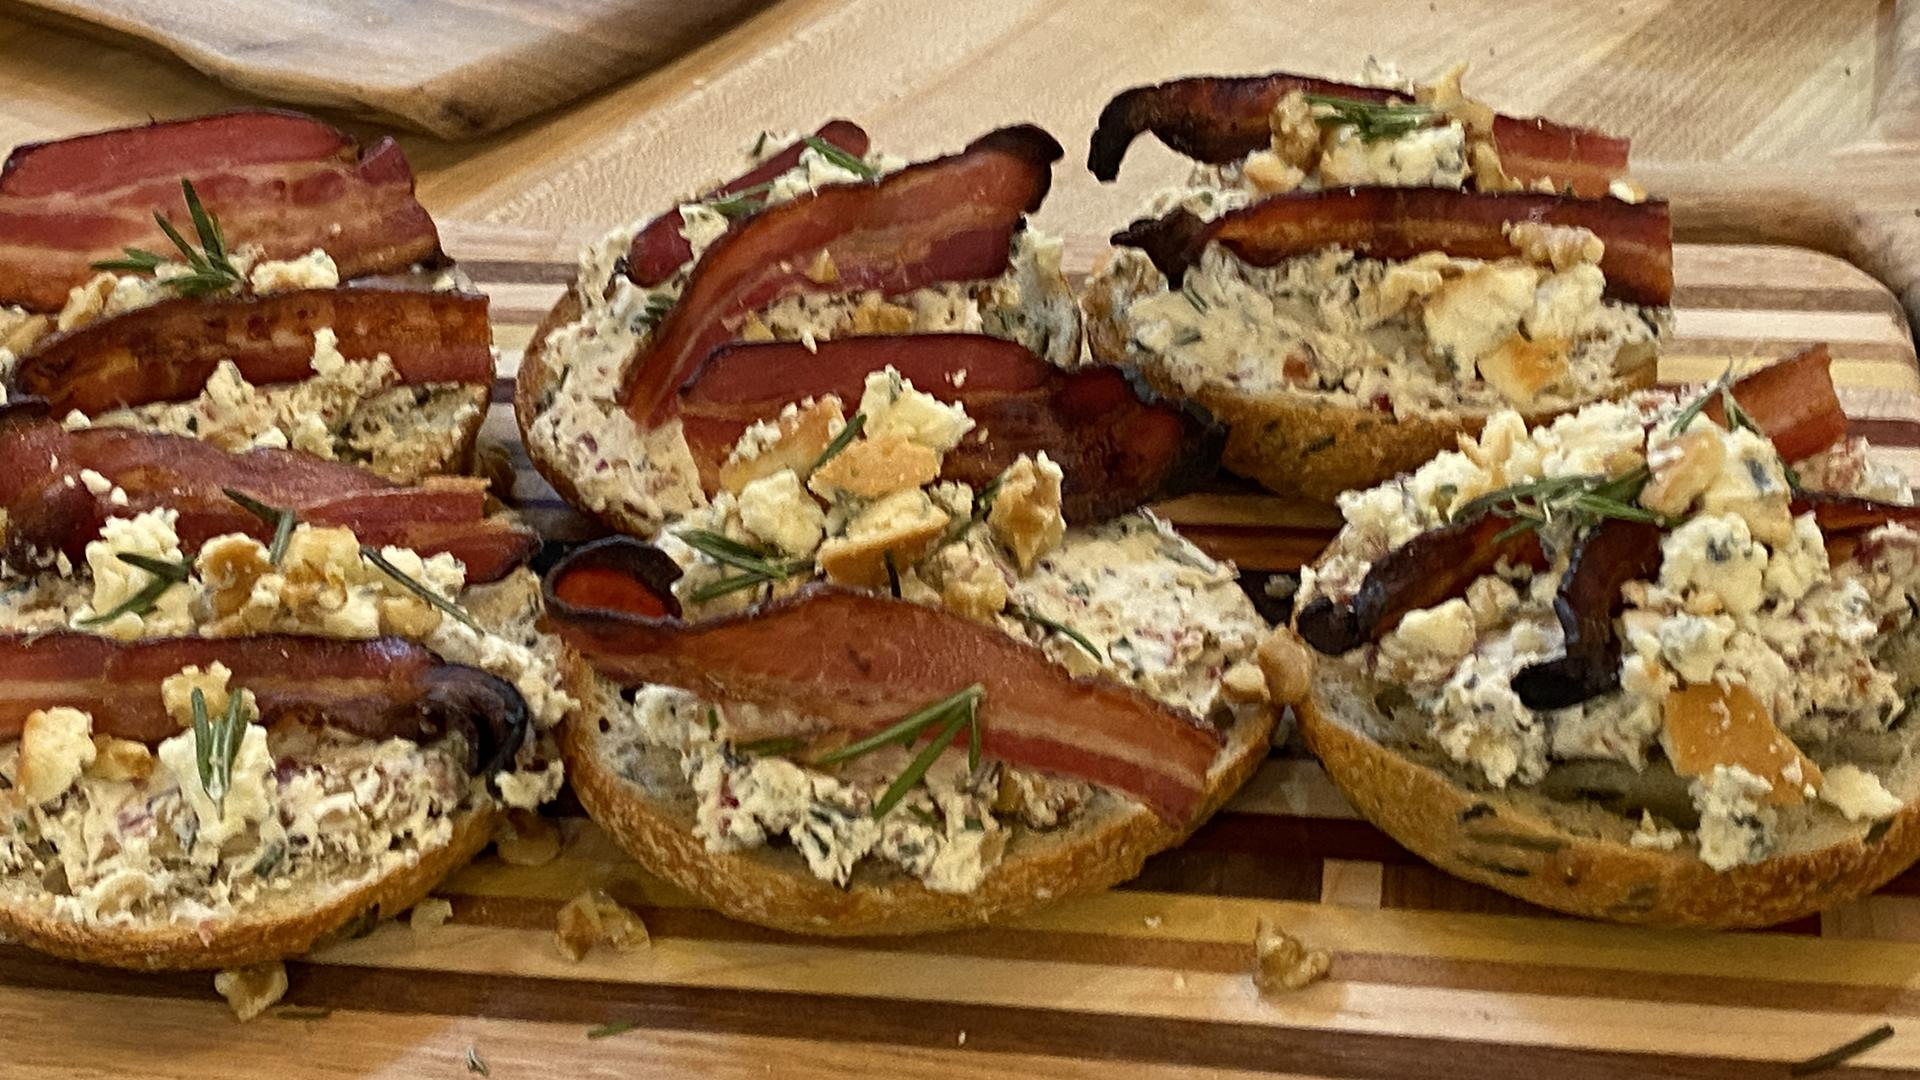 Blue Cream Cheese Bagels with Walnuts, Bacon and Rosemary | Bagel Lab